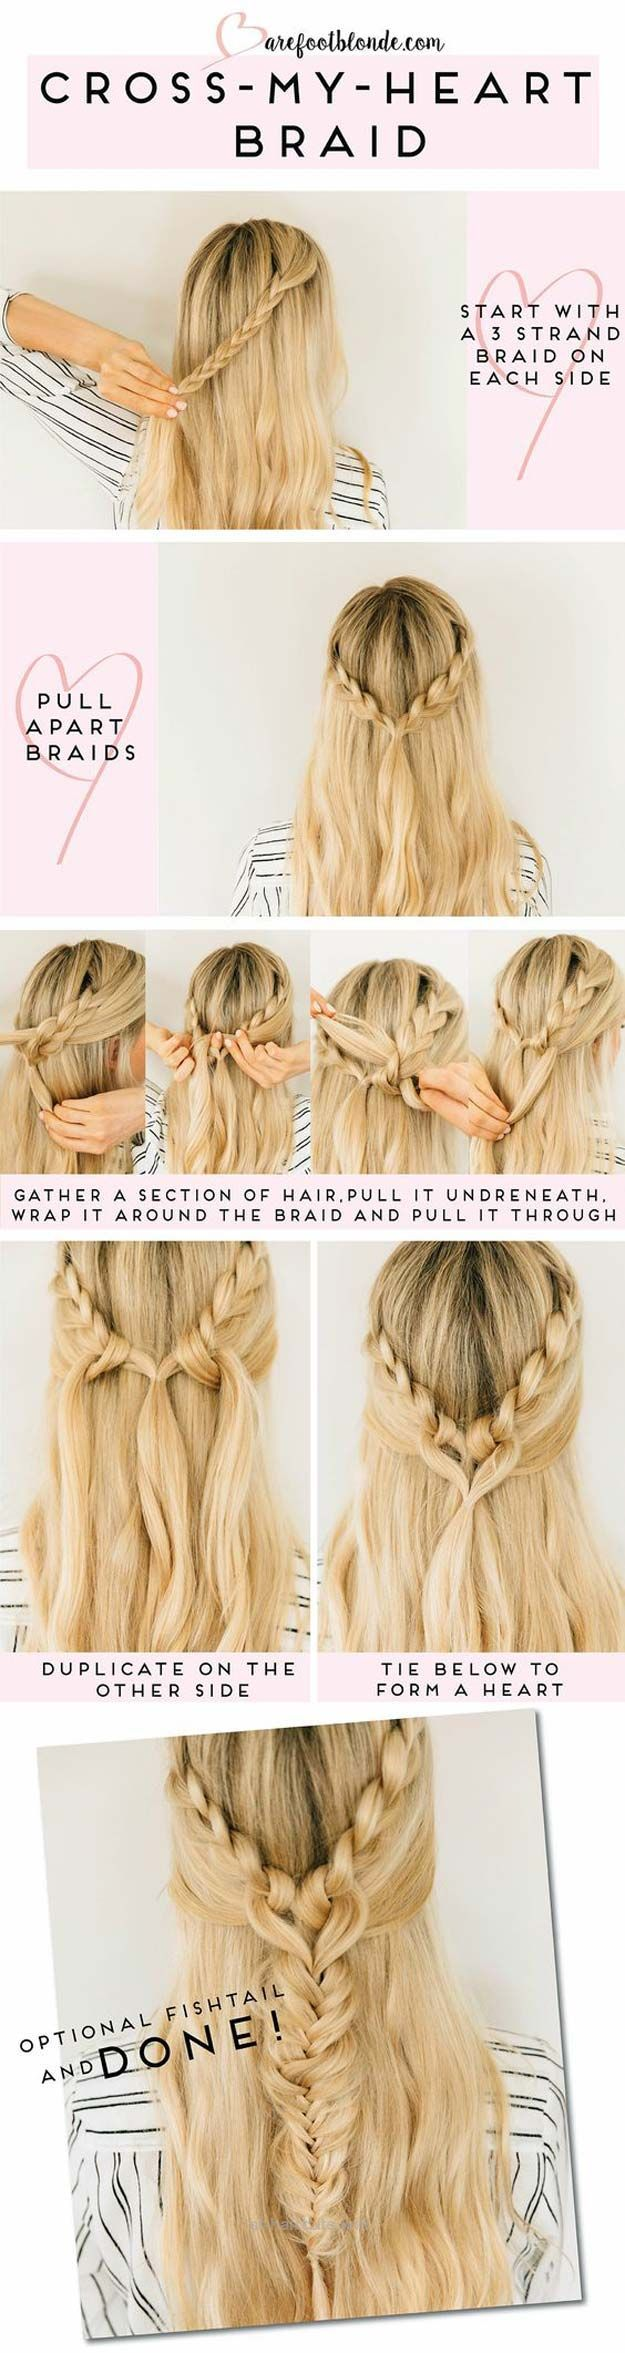 Nice Best Hair Braiding Tutorials – Cross My Heart Braid – Easy Step by Step Tutorials for Braids – How To Braid Fishtail, French Braids, Flower Crown, Side Braids, Cornro ..